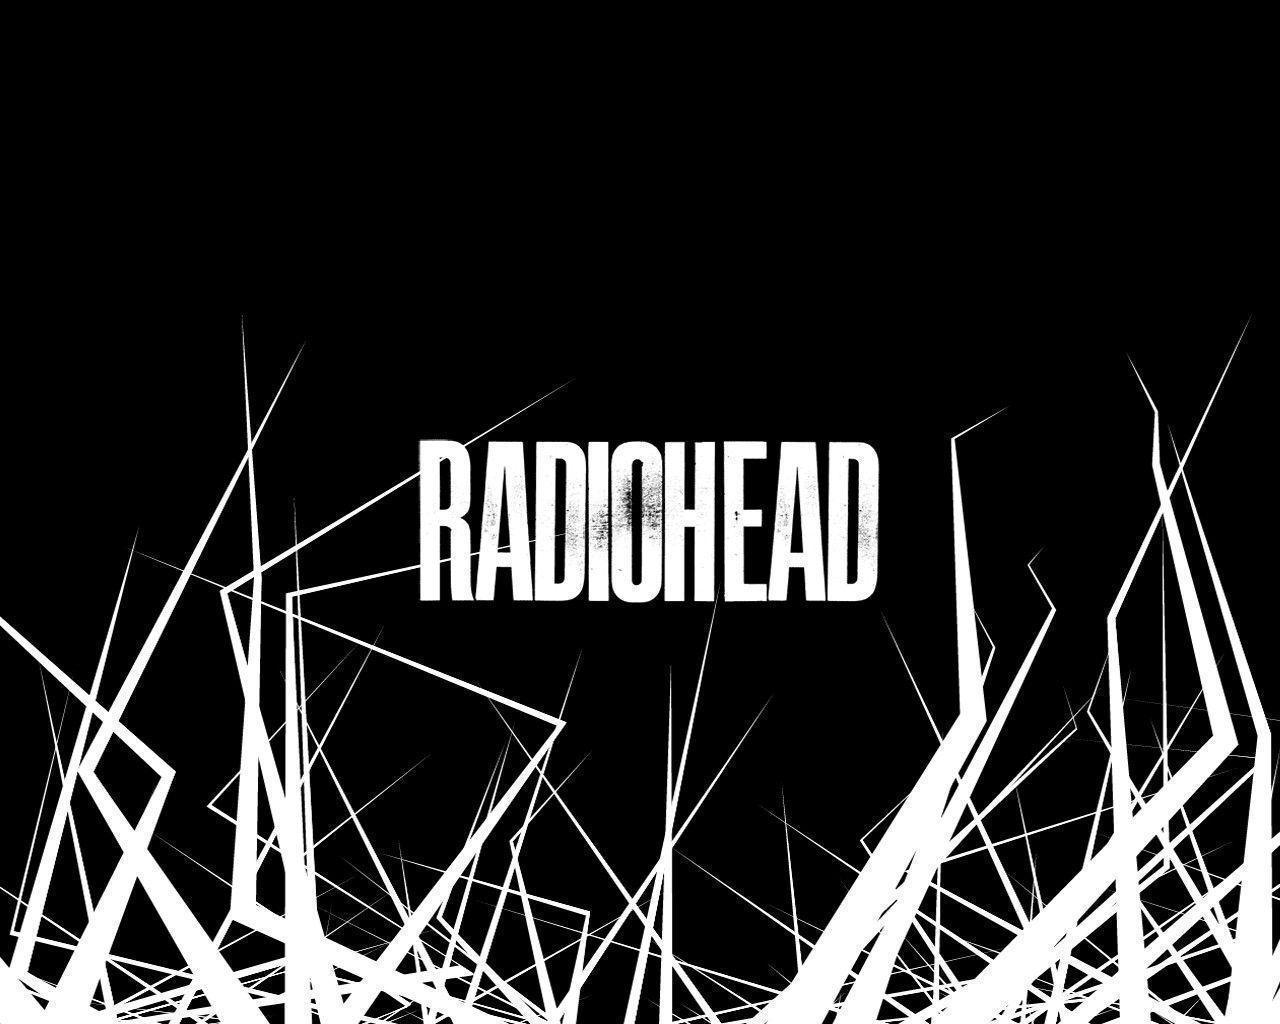 Radiohead wallpapers wallpaper cave for Wallpaper photo